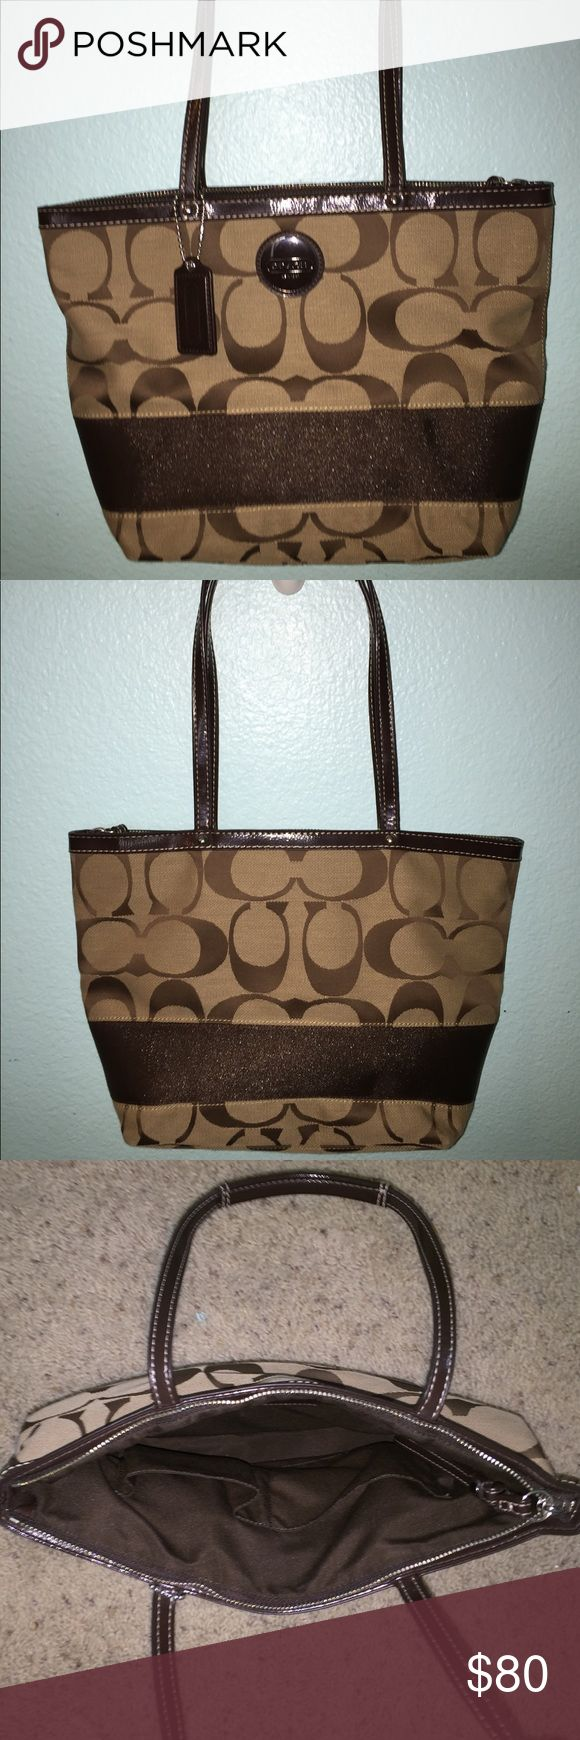 Coach Medium Tote Purse warm brown with dark brown accents. multiple pockets on the inside including a zipper pocket. looks new. only used a few times with no marks Coach Bags Totes